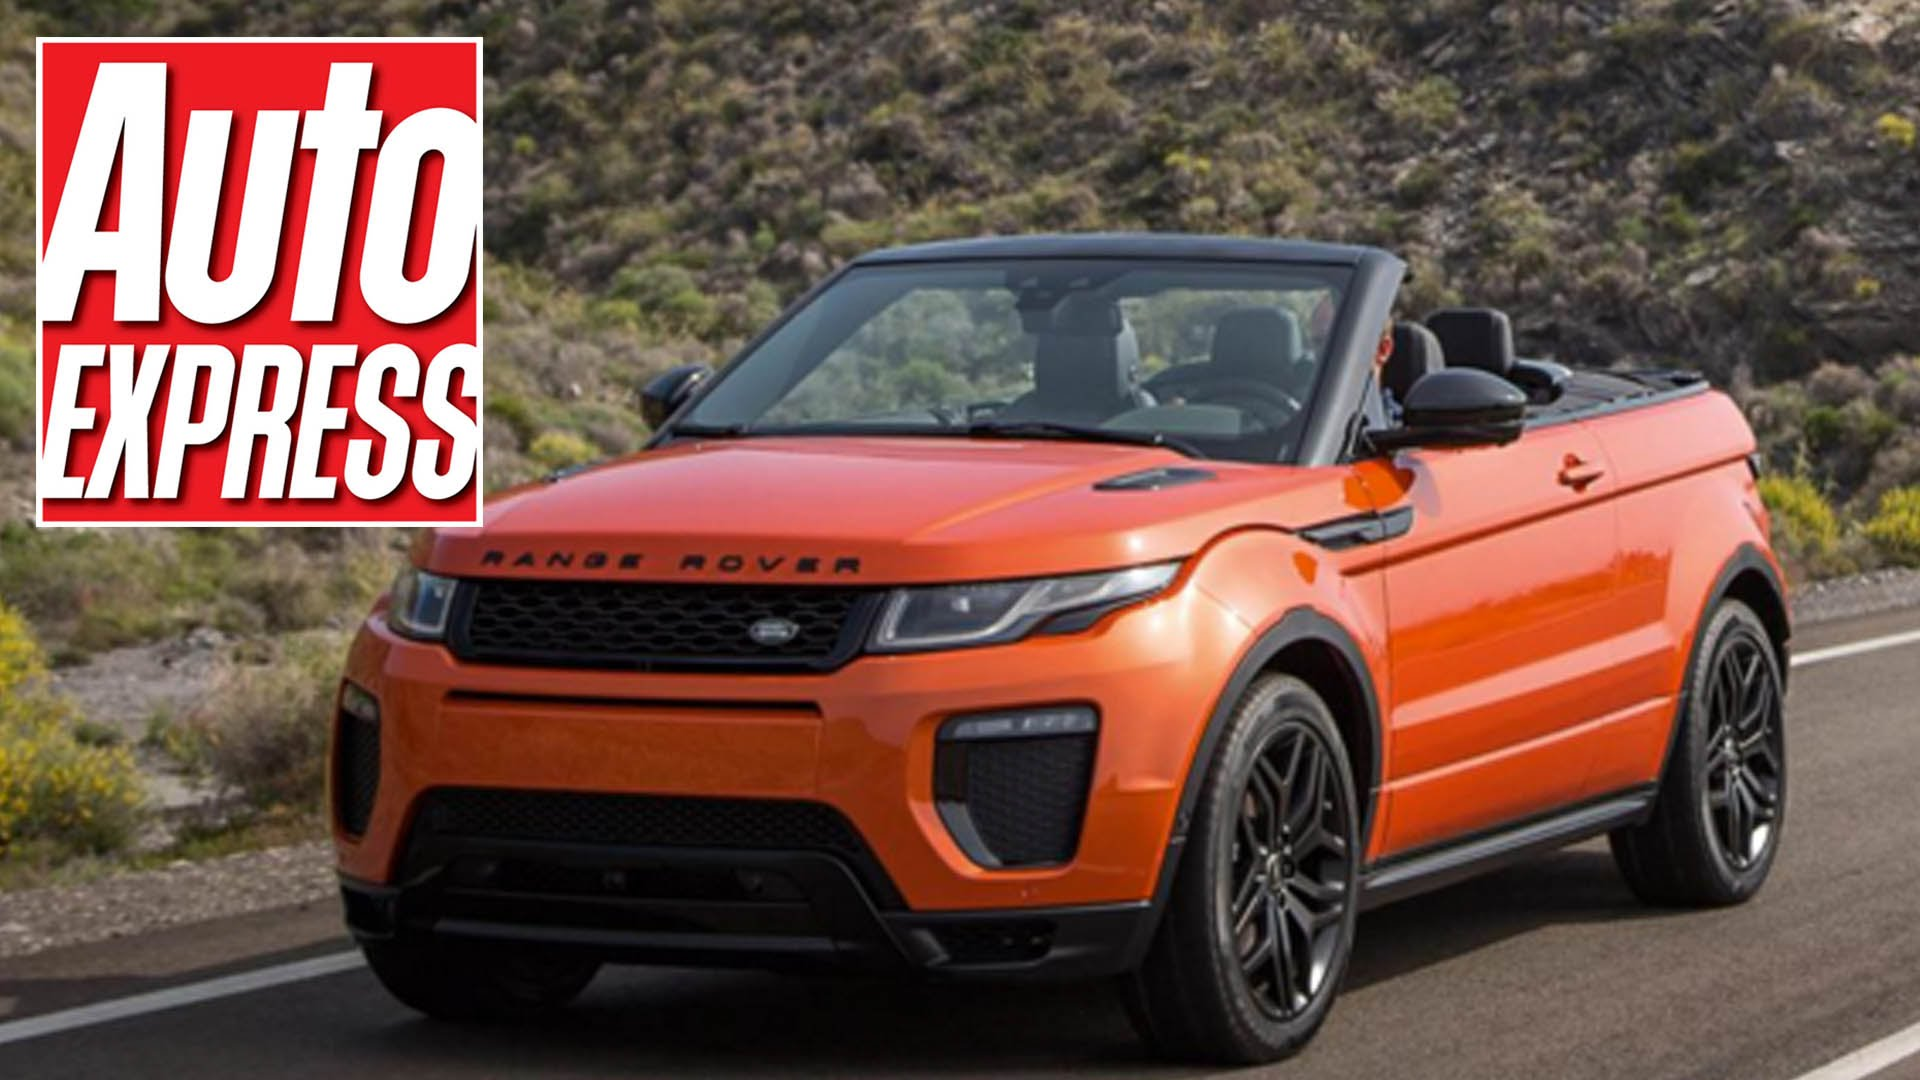 The Brand New Range Rover Evoque Convertible Is Turning Heads And